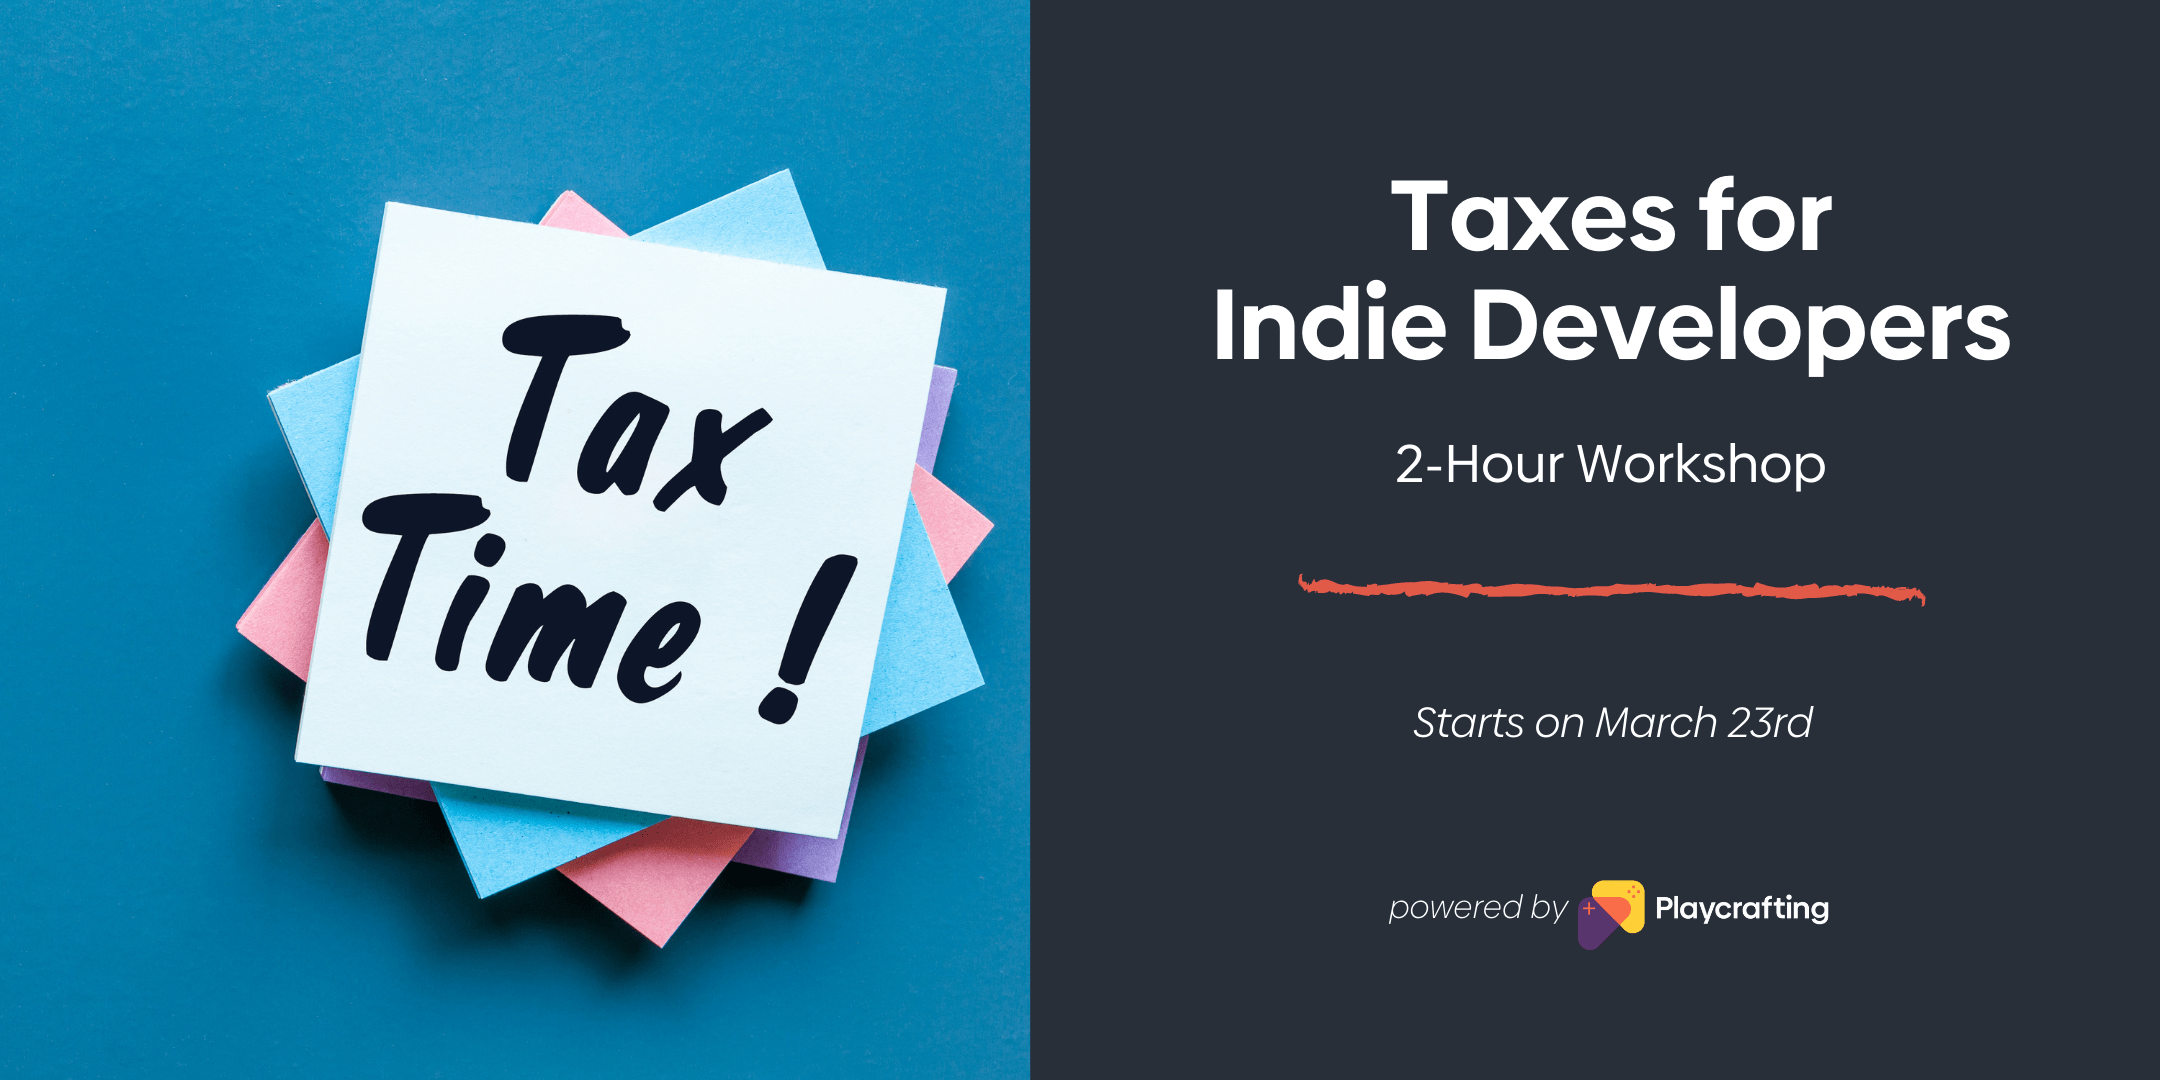 Taxes for Indies